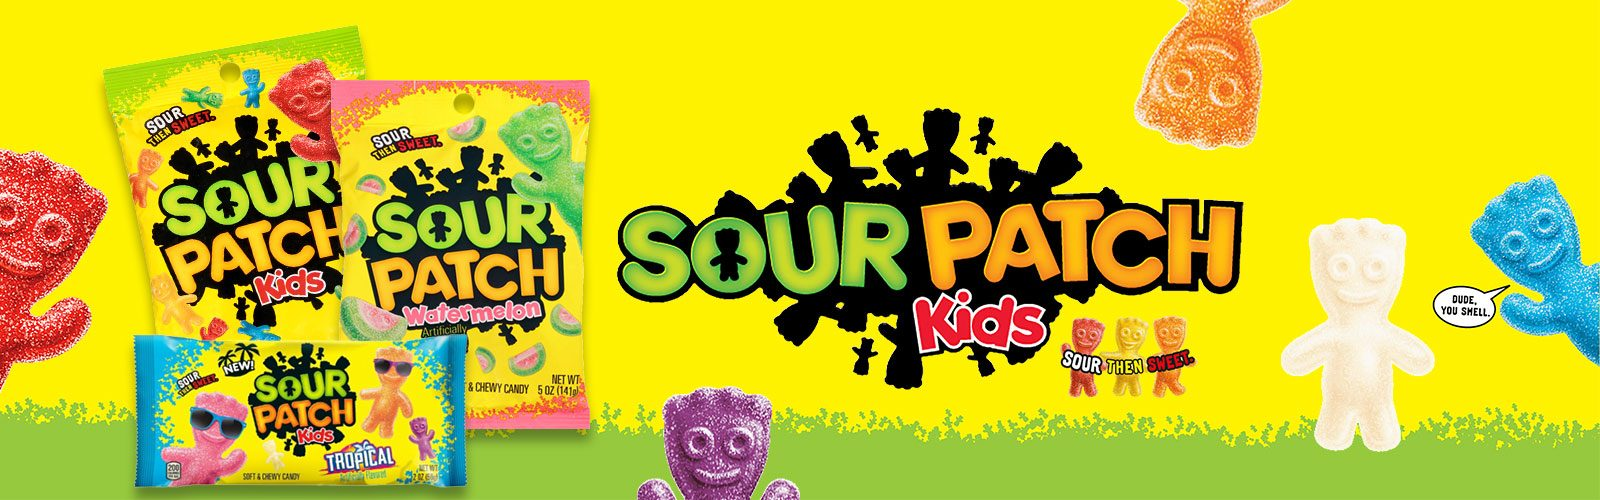 Sour-Patch-Slide-1600x500-pixels